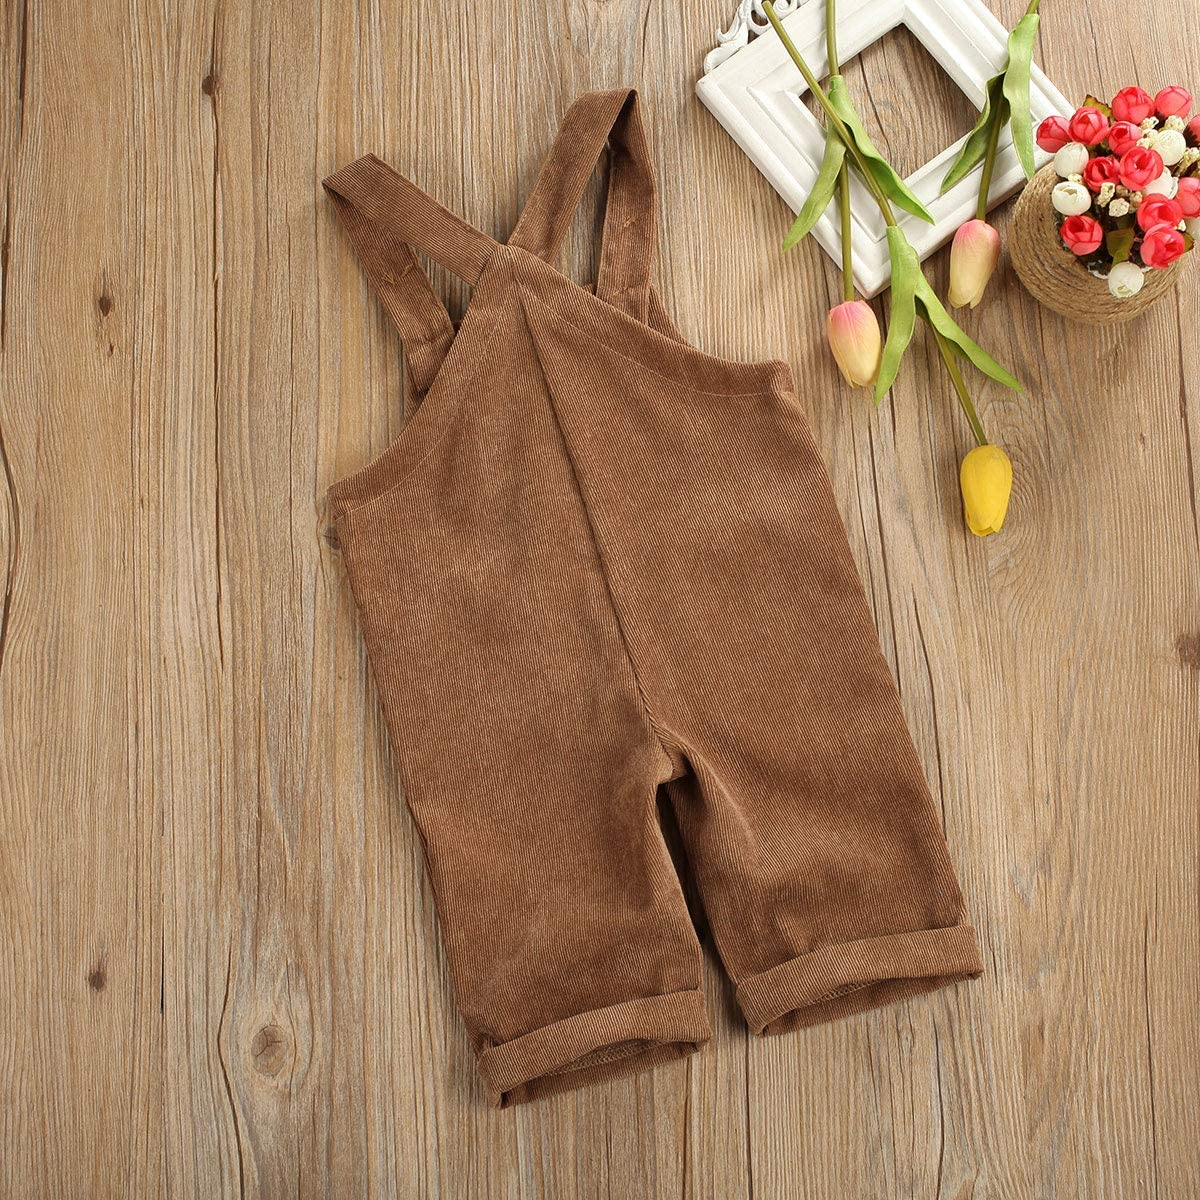 Yingyingni Toddler Baby Corduroy Knotted Jumpsuit Solid Bib Overalls with Pocket Retro Strap Pants for Boys Girls